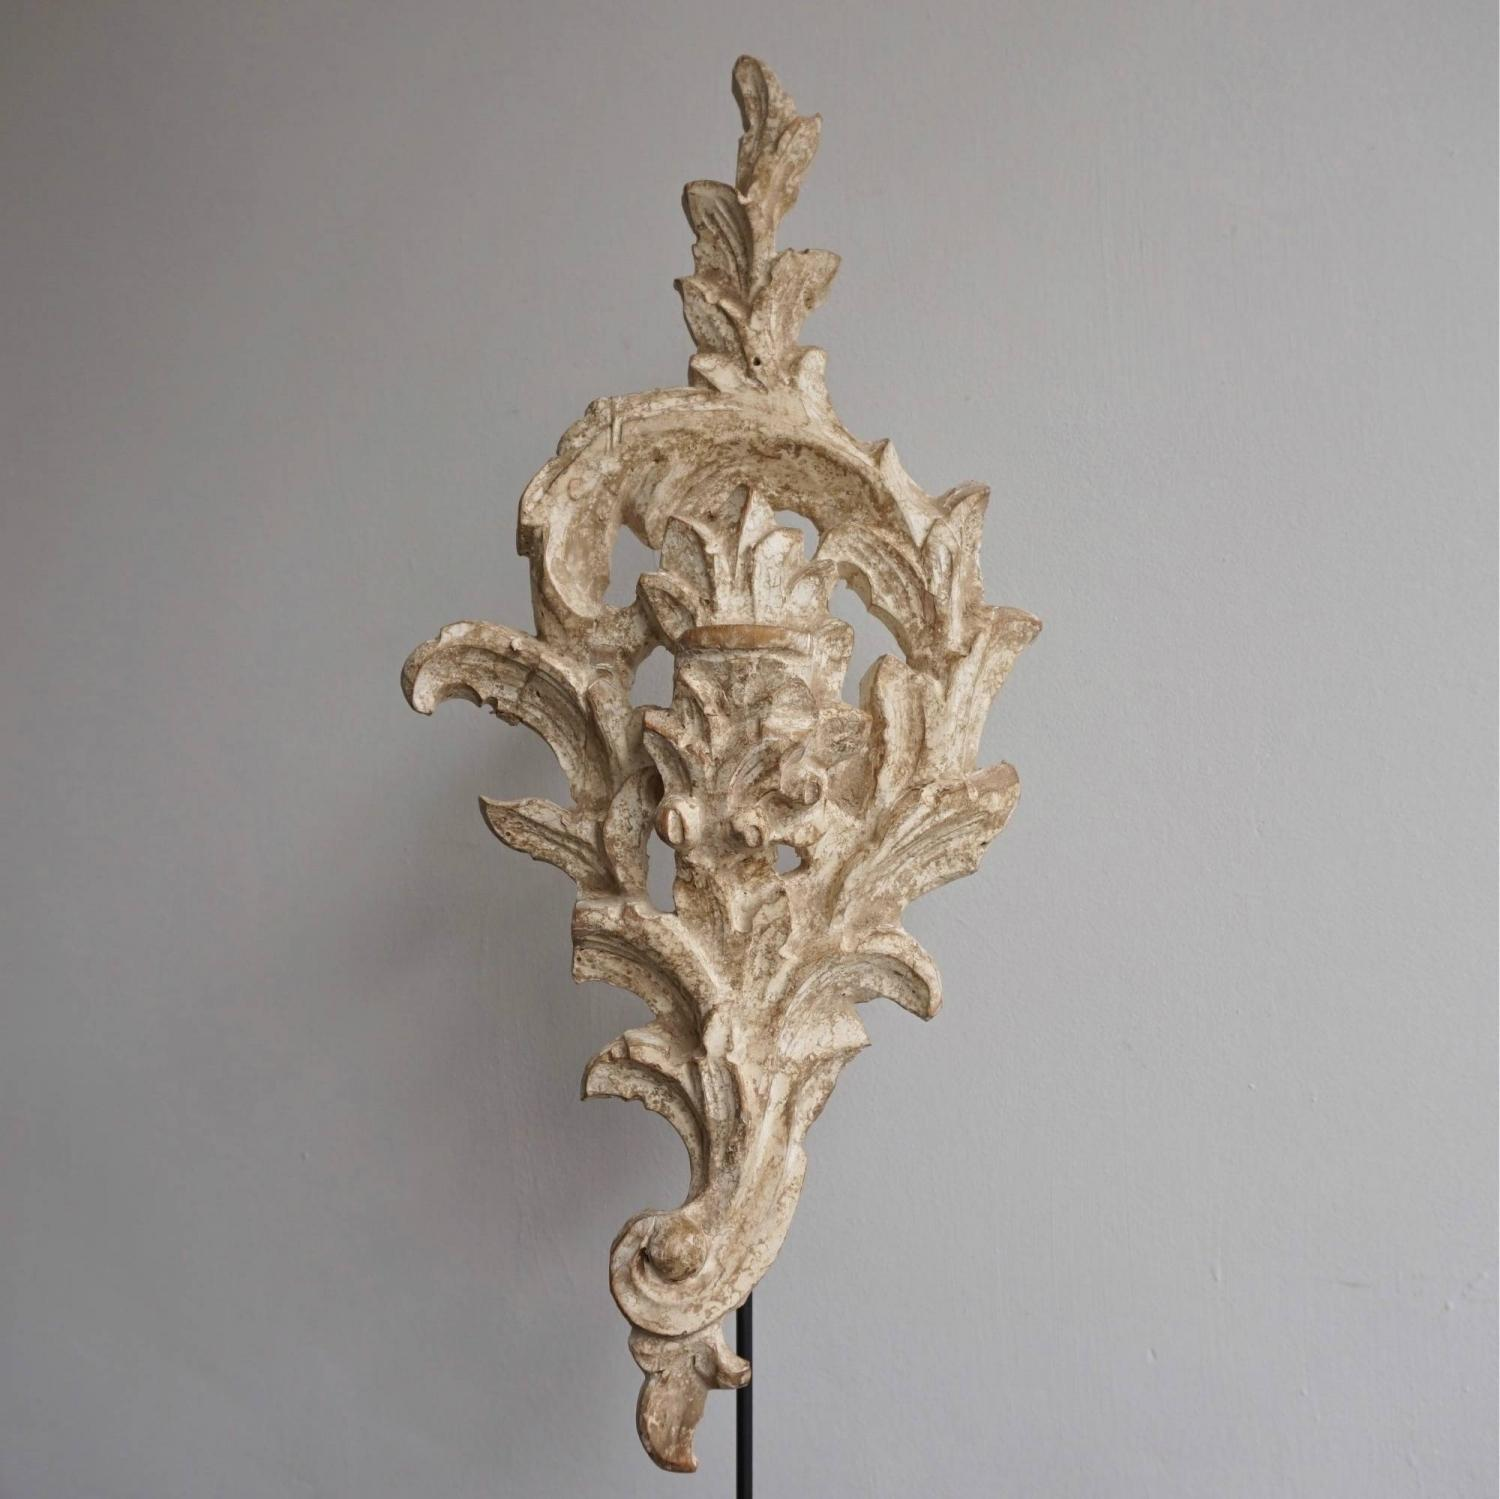 BEAUTIFUL 18TH CENTURY HAND CARVED BAROQUE ORNAMENT